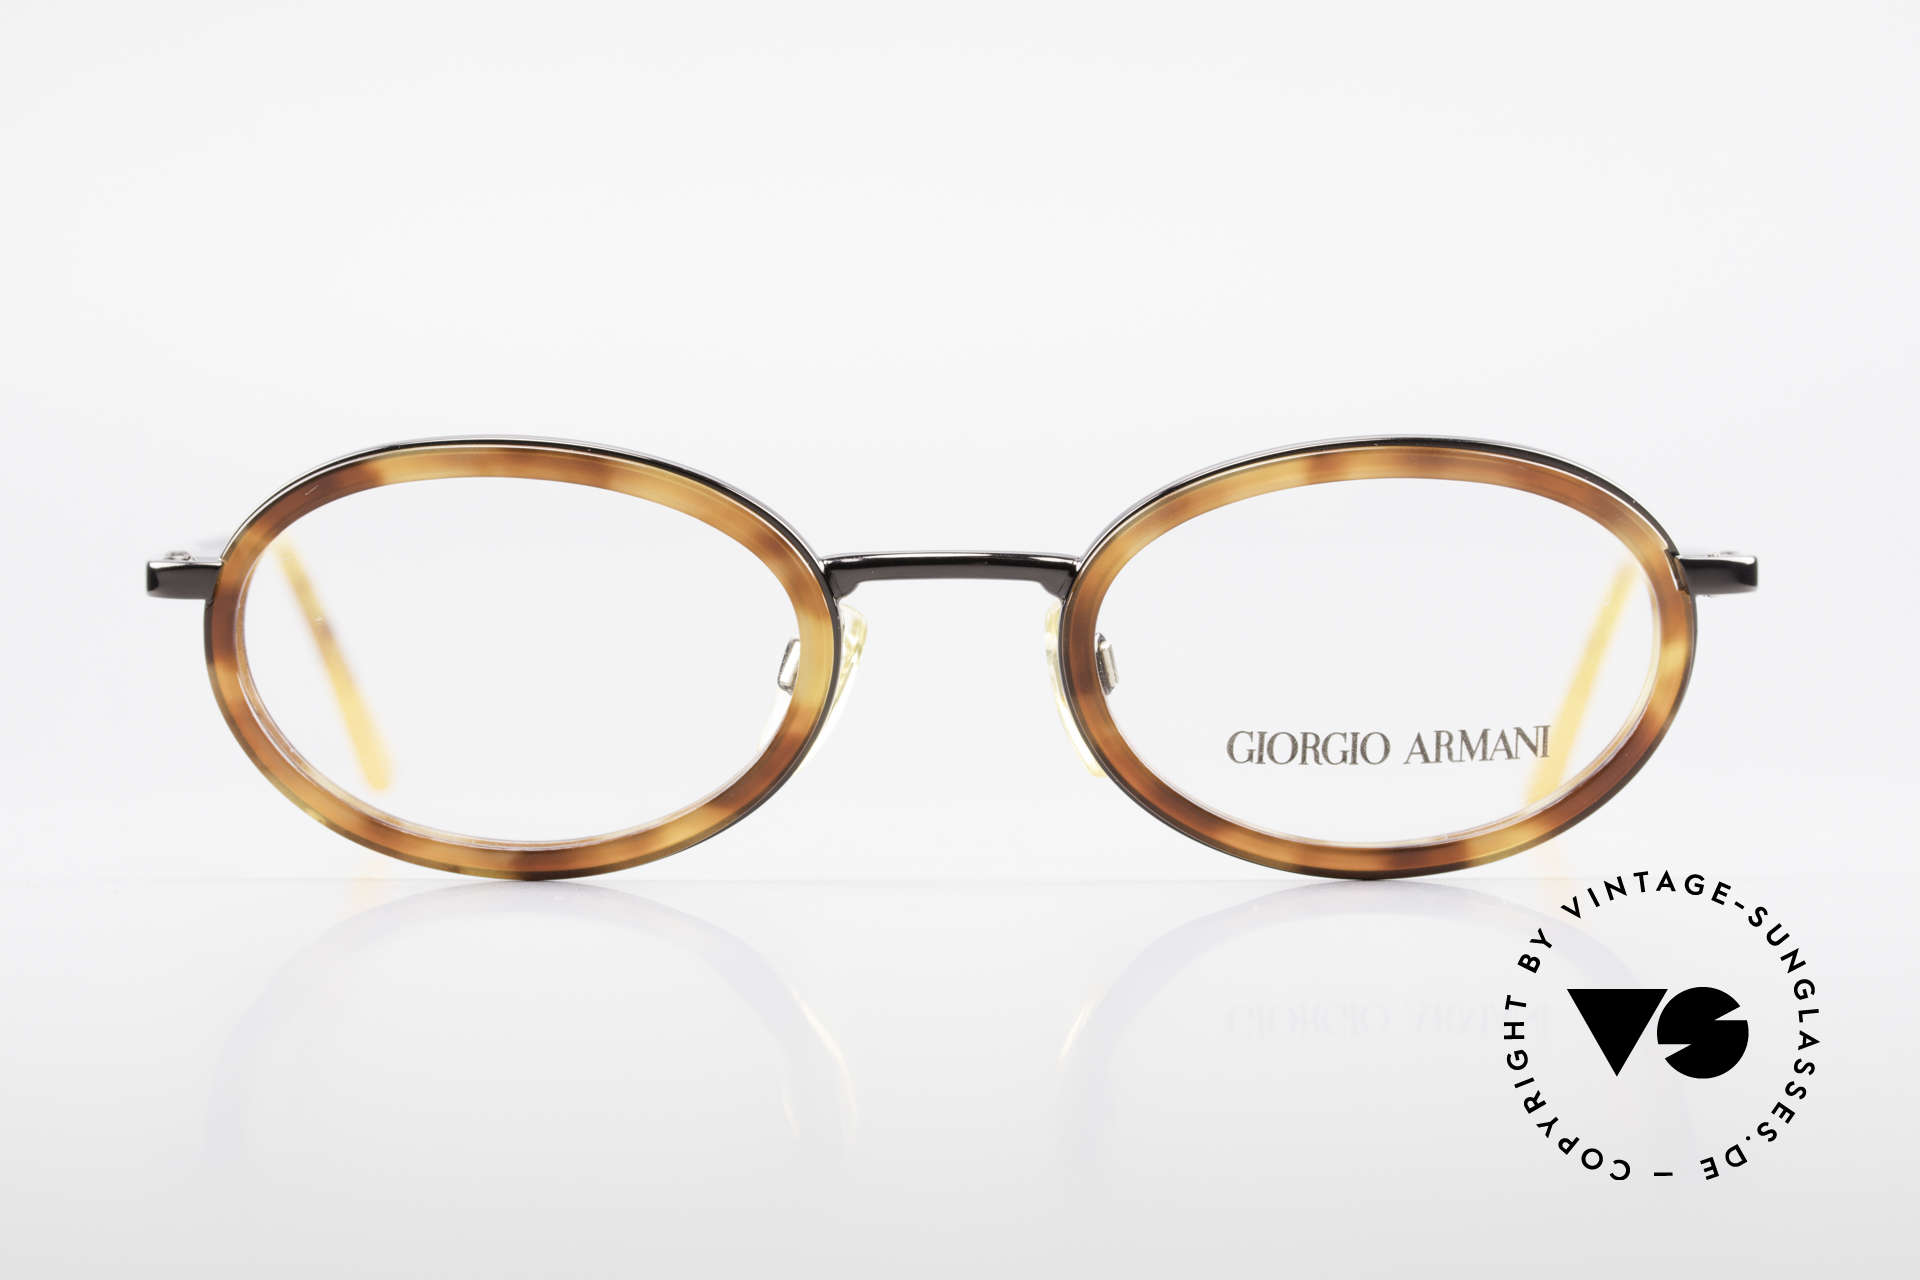 Giorgio Armani 258 90's Oval Vintage Eyeglasses, classic OVAL metal frame with flexible spring hinges, Made for Men and Women